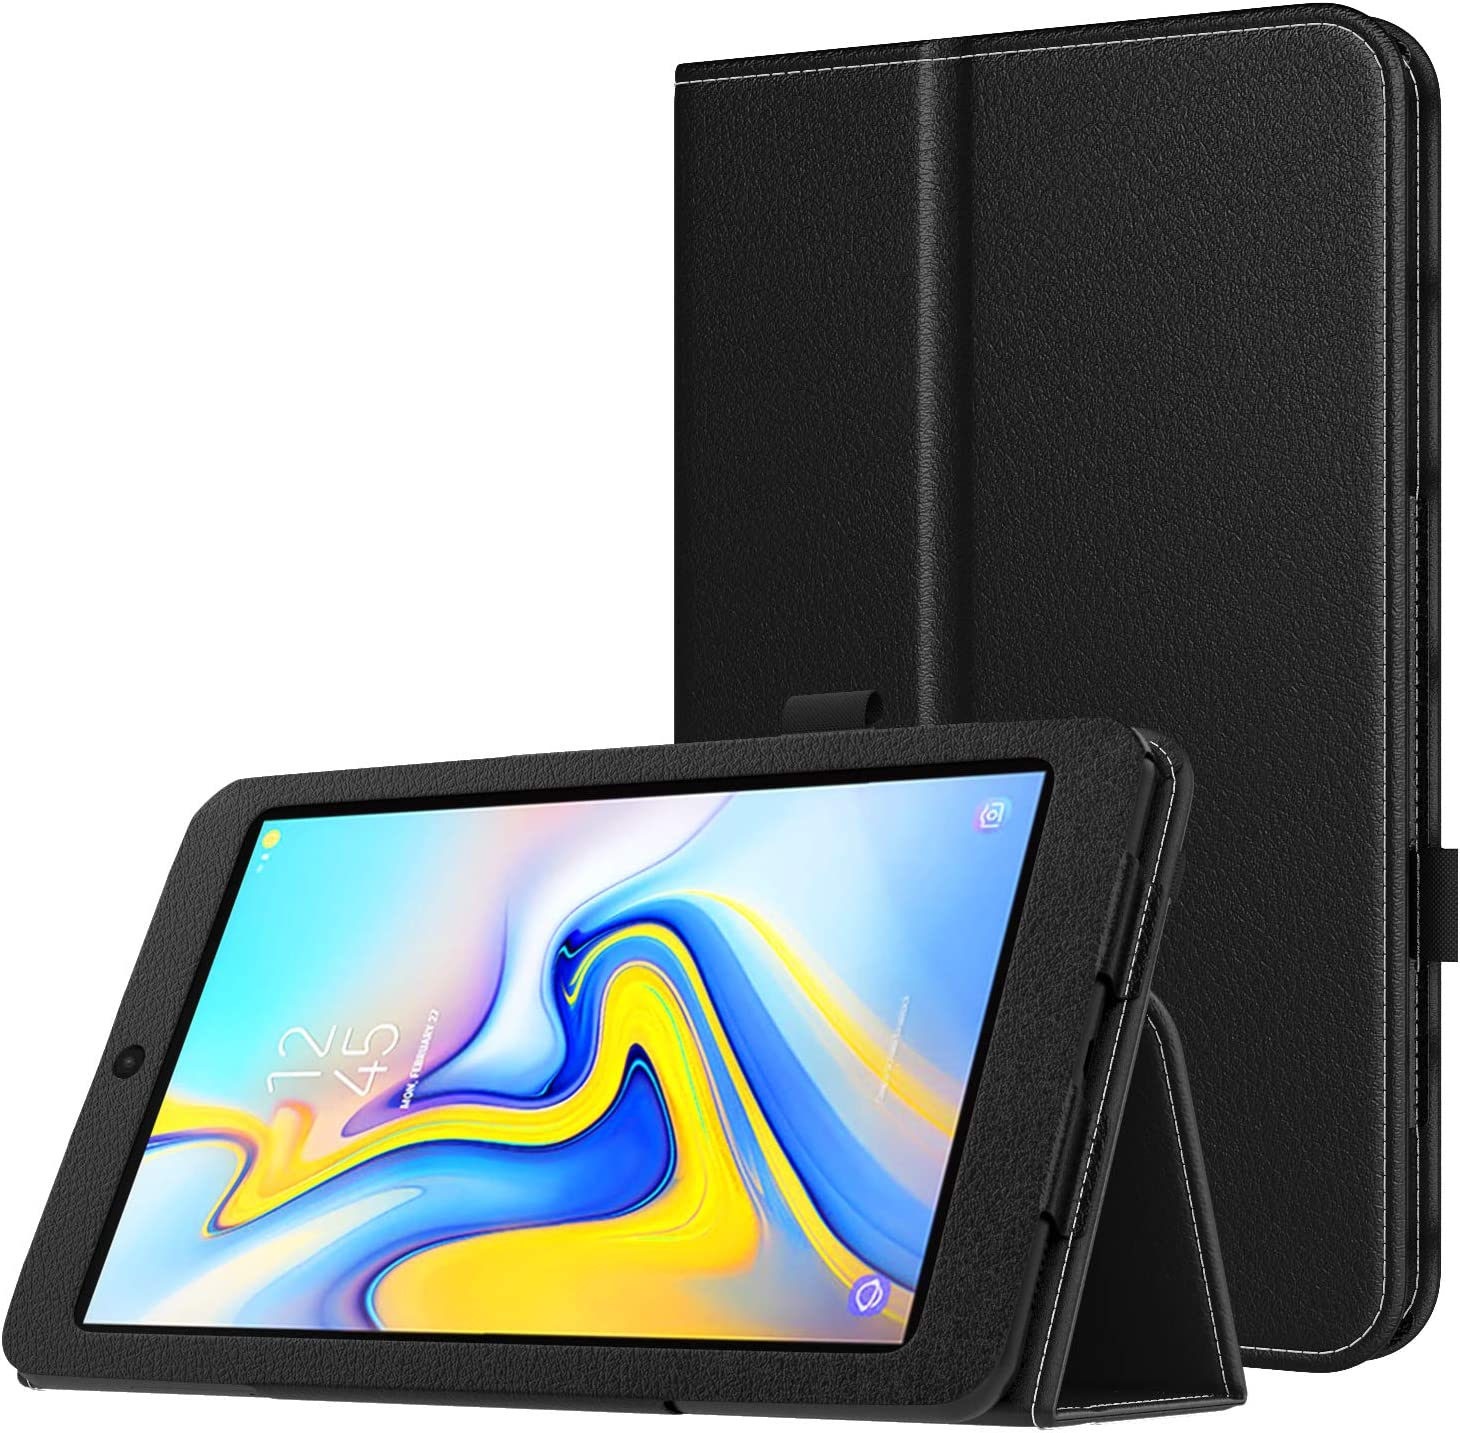 MoKo Case for Samsung Galaxy Tab A 8.0 2018 SM-T387, Premium Folding Stand Slim Smart Cover Case Compatible for Galaxy Tab A 8.0 Inch 2018 Release Tablet - Black